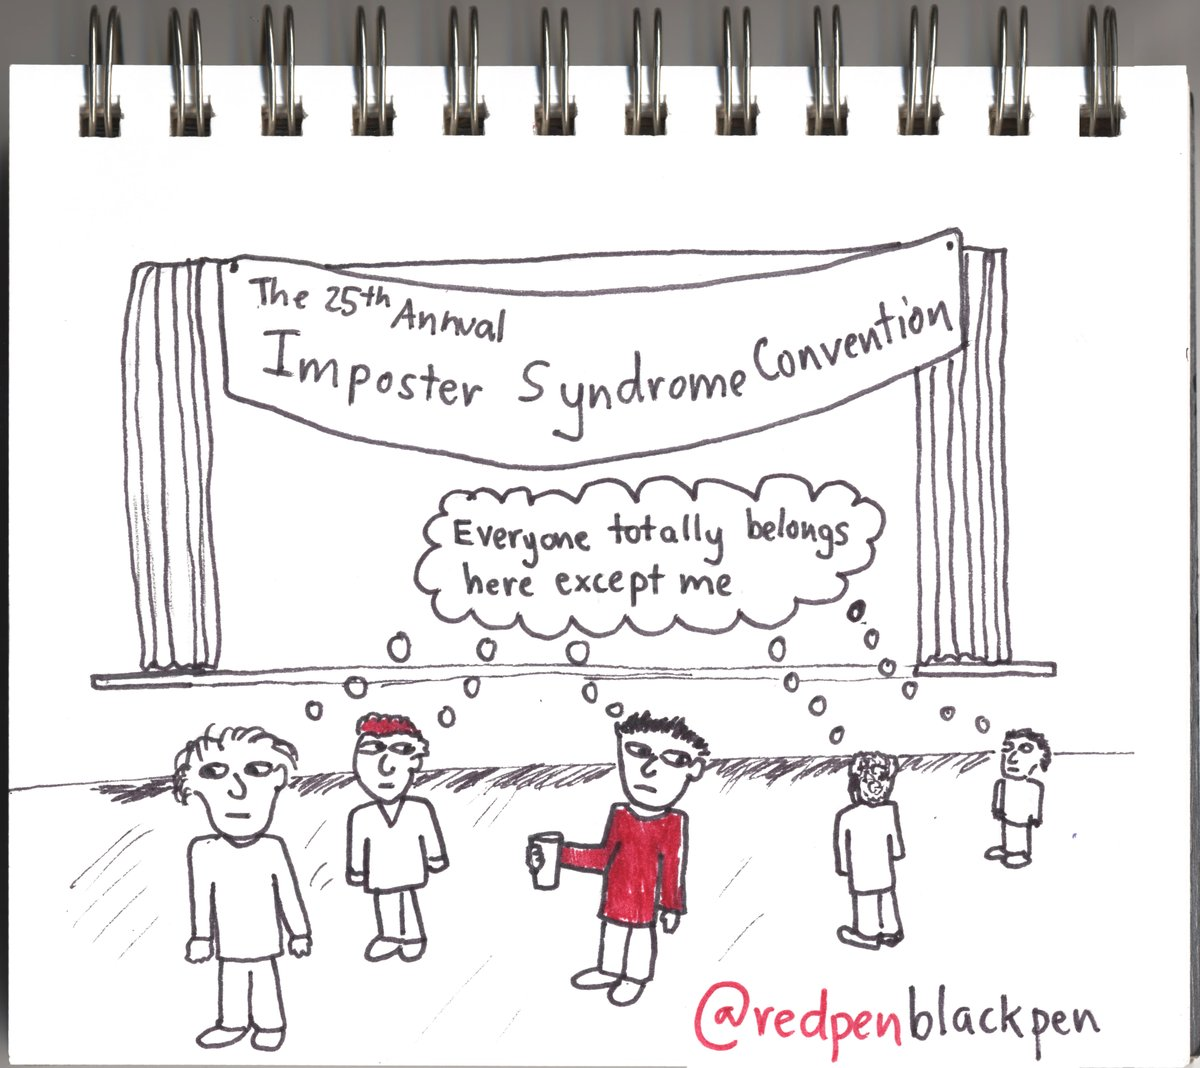 Old cartoon, with modern-day social distancing #impostersyndrome https://t.co/gJniN7mxSY